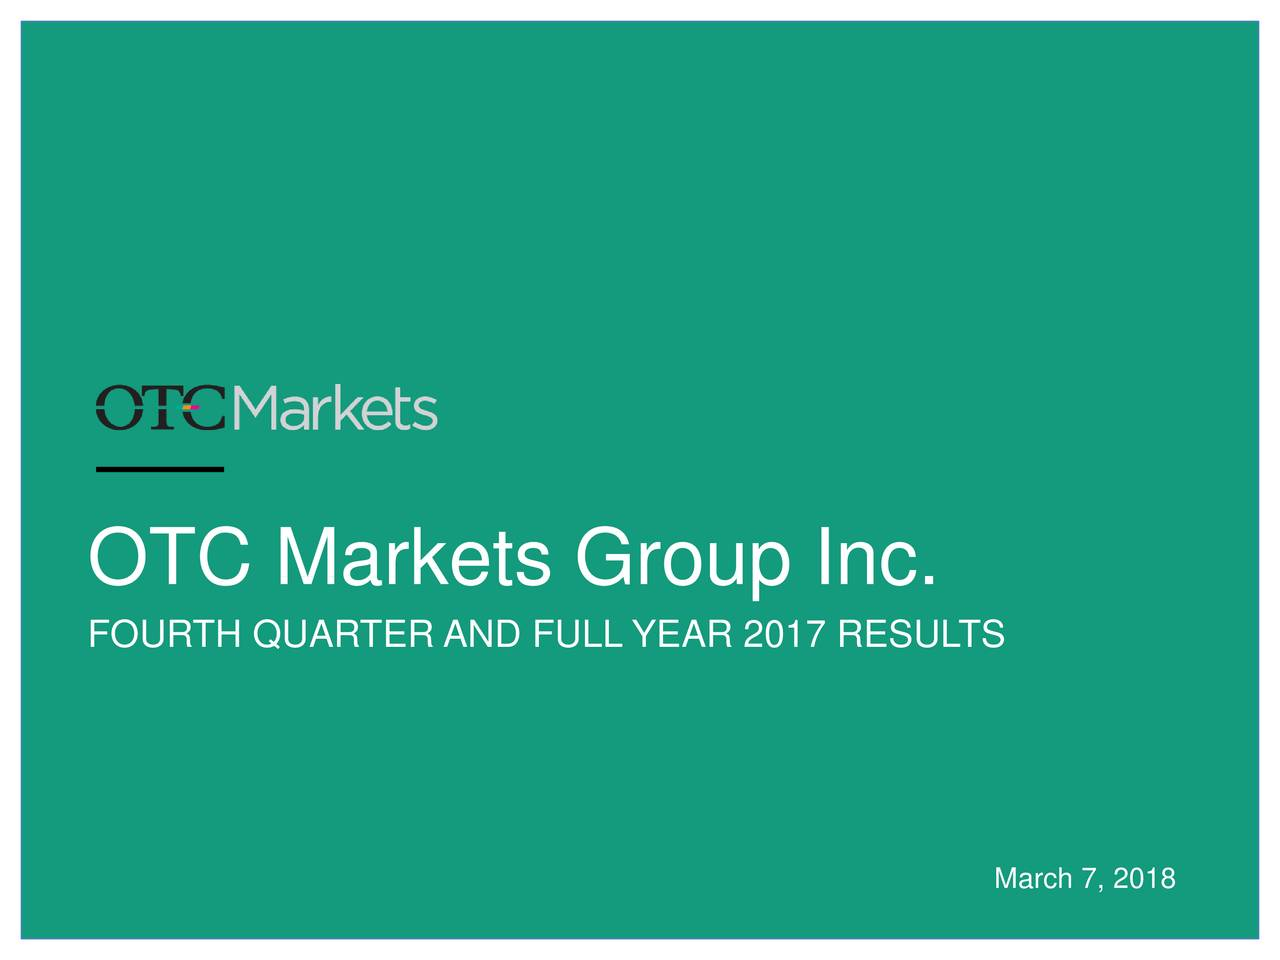 OTC Markets Group Inc.A 2017 Q4 - Results - Earnings Call Slides - OTC Markets Group Inc ...